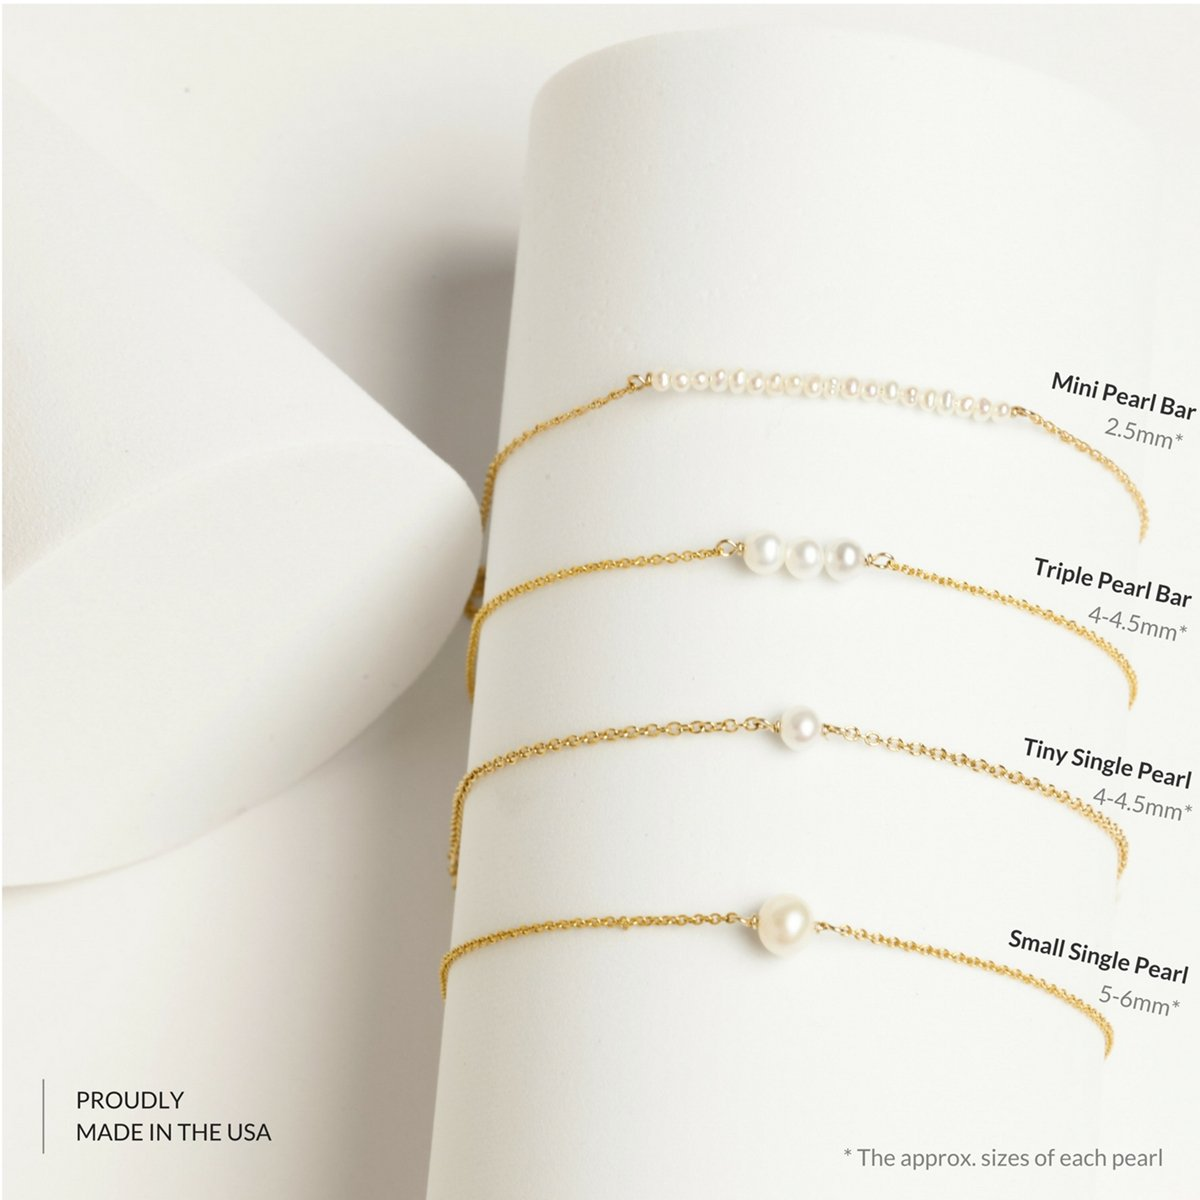 BENIQUE Dainty Necklace Choker for Women - Freshwater Cultured Pearl, Fine Chain for Layering, AAA Cubic Zirconia Drop, 14K Gold Filled, Made in USA, 13''+3'' Adjustable Ext. (Tiny Single Pearl) by BENIQUE (Image #3)